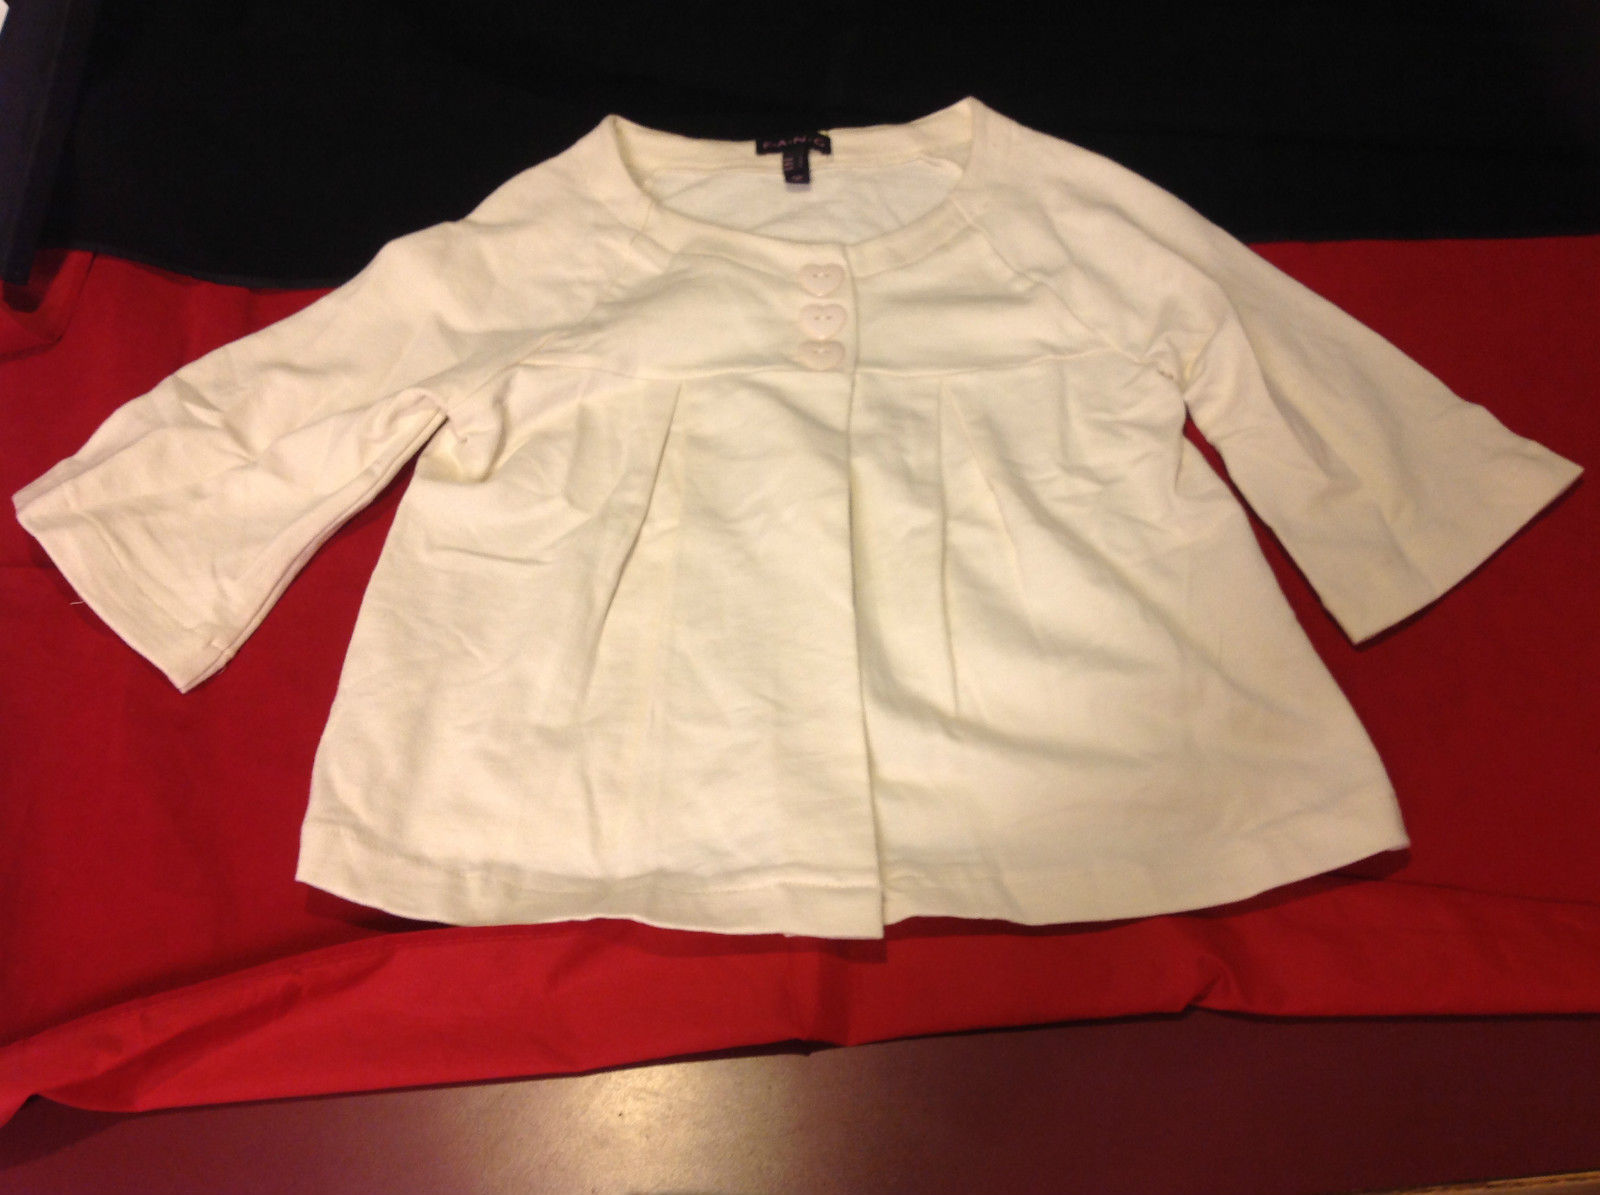 Girls Cream Color Blazer 3 Heart Button Closure by Fang 3/4 L Sleeves Size Large